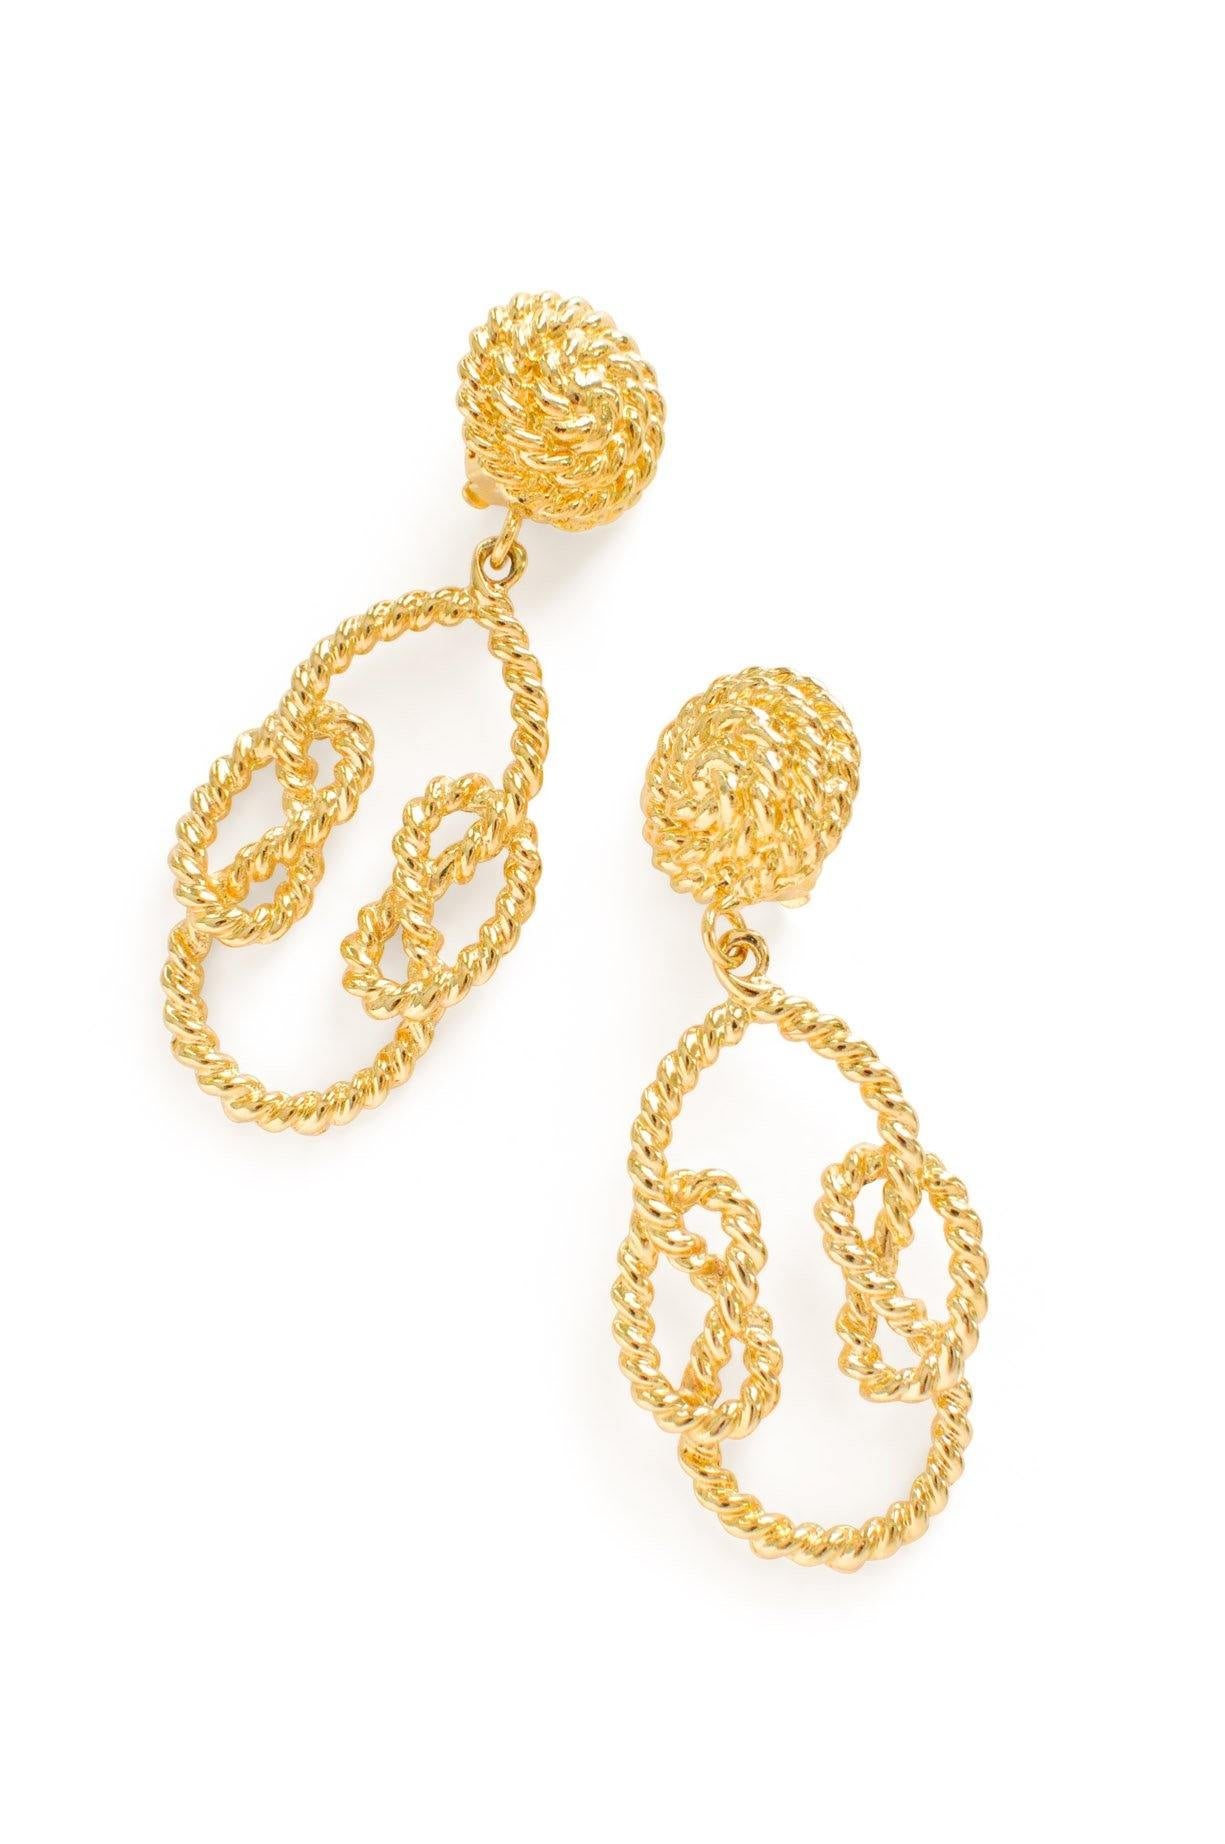 Rope Statement Clip-on Earrings